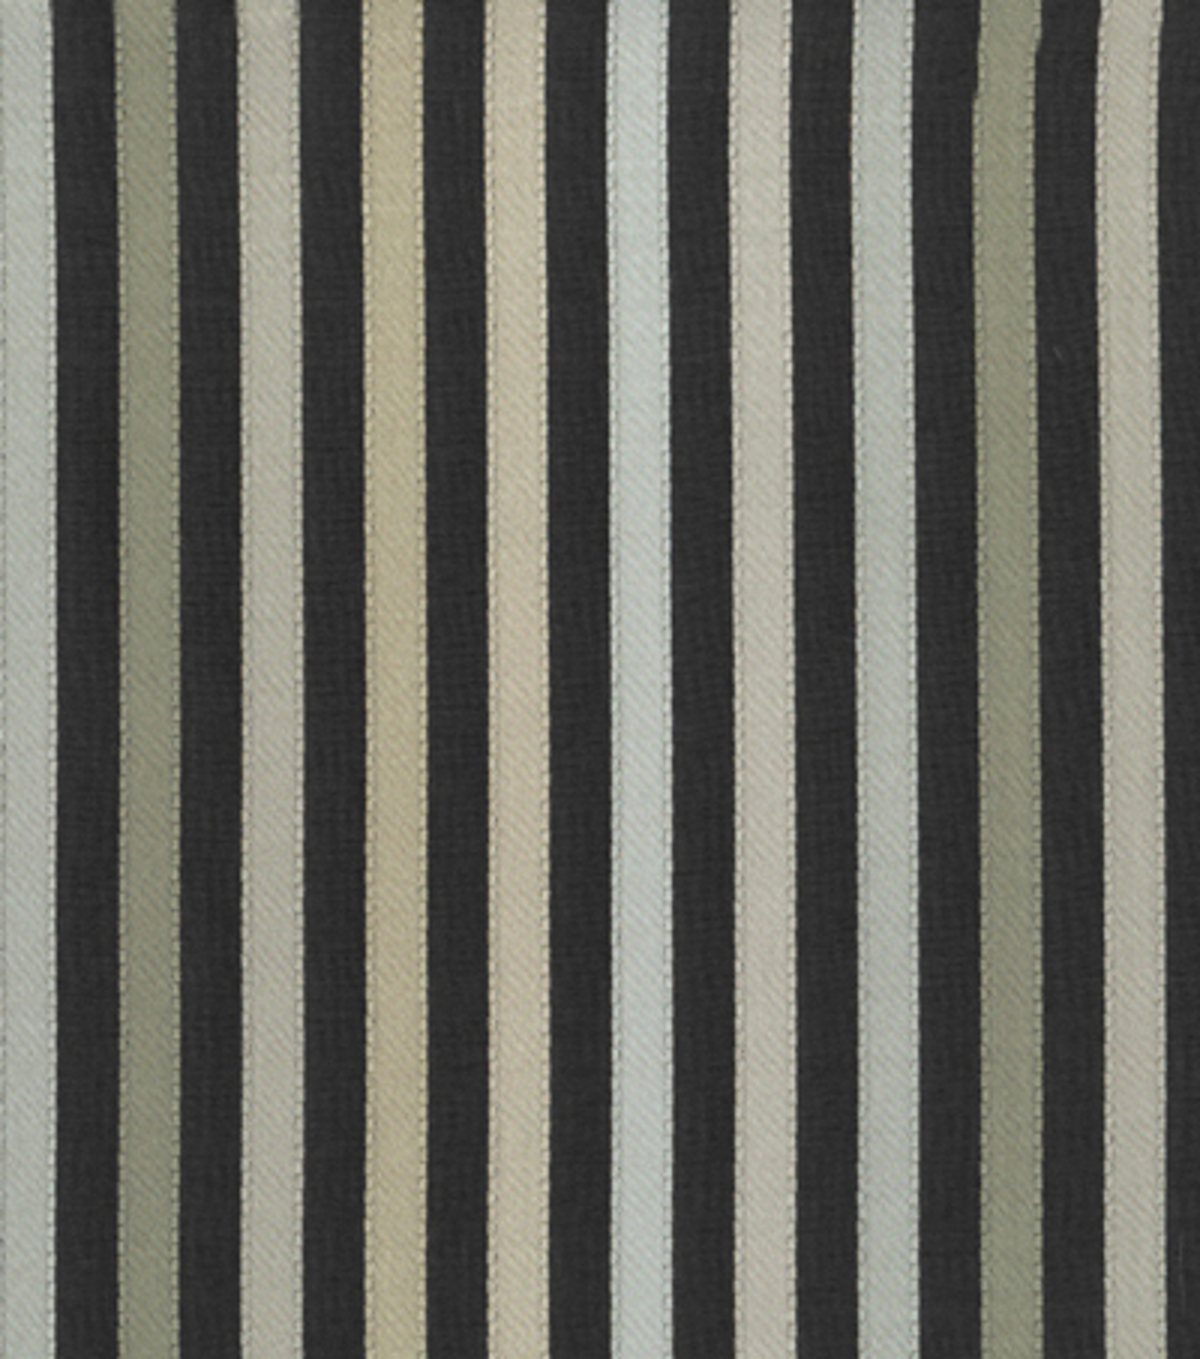 Home Decor 8\u0022x8\u0022 Fabric Swatch-Upholstery-Waverly Ribbon Ceremony/Licorice